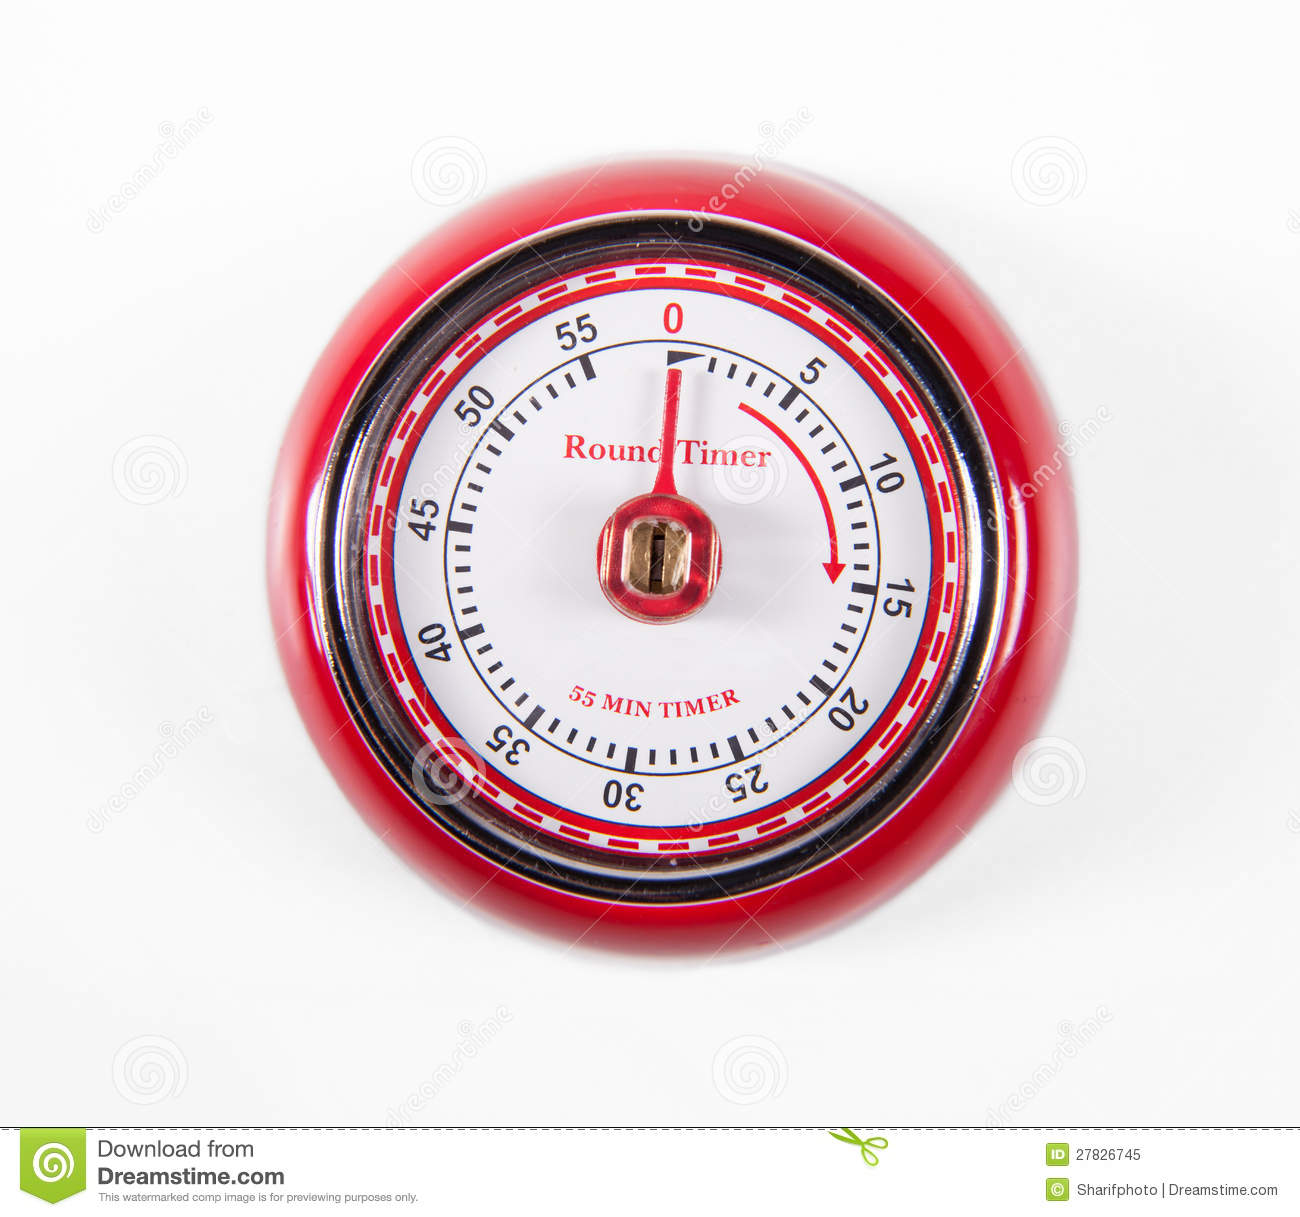 Retro Kitchen Timer Stock Image. Image Of Mechanical